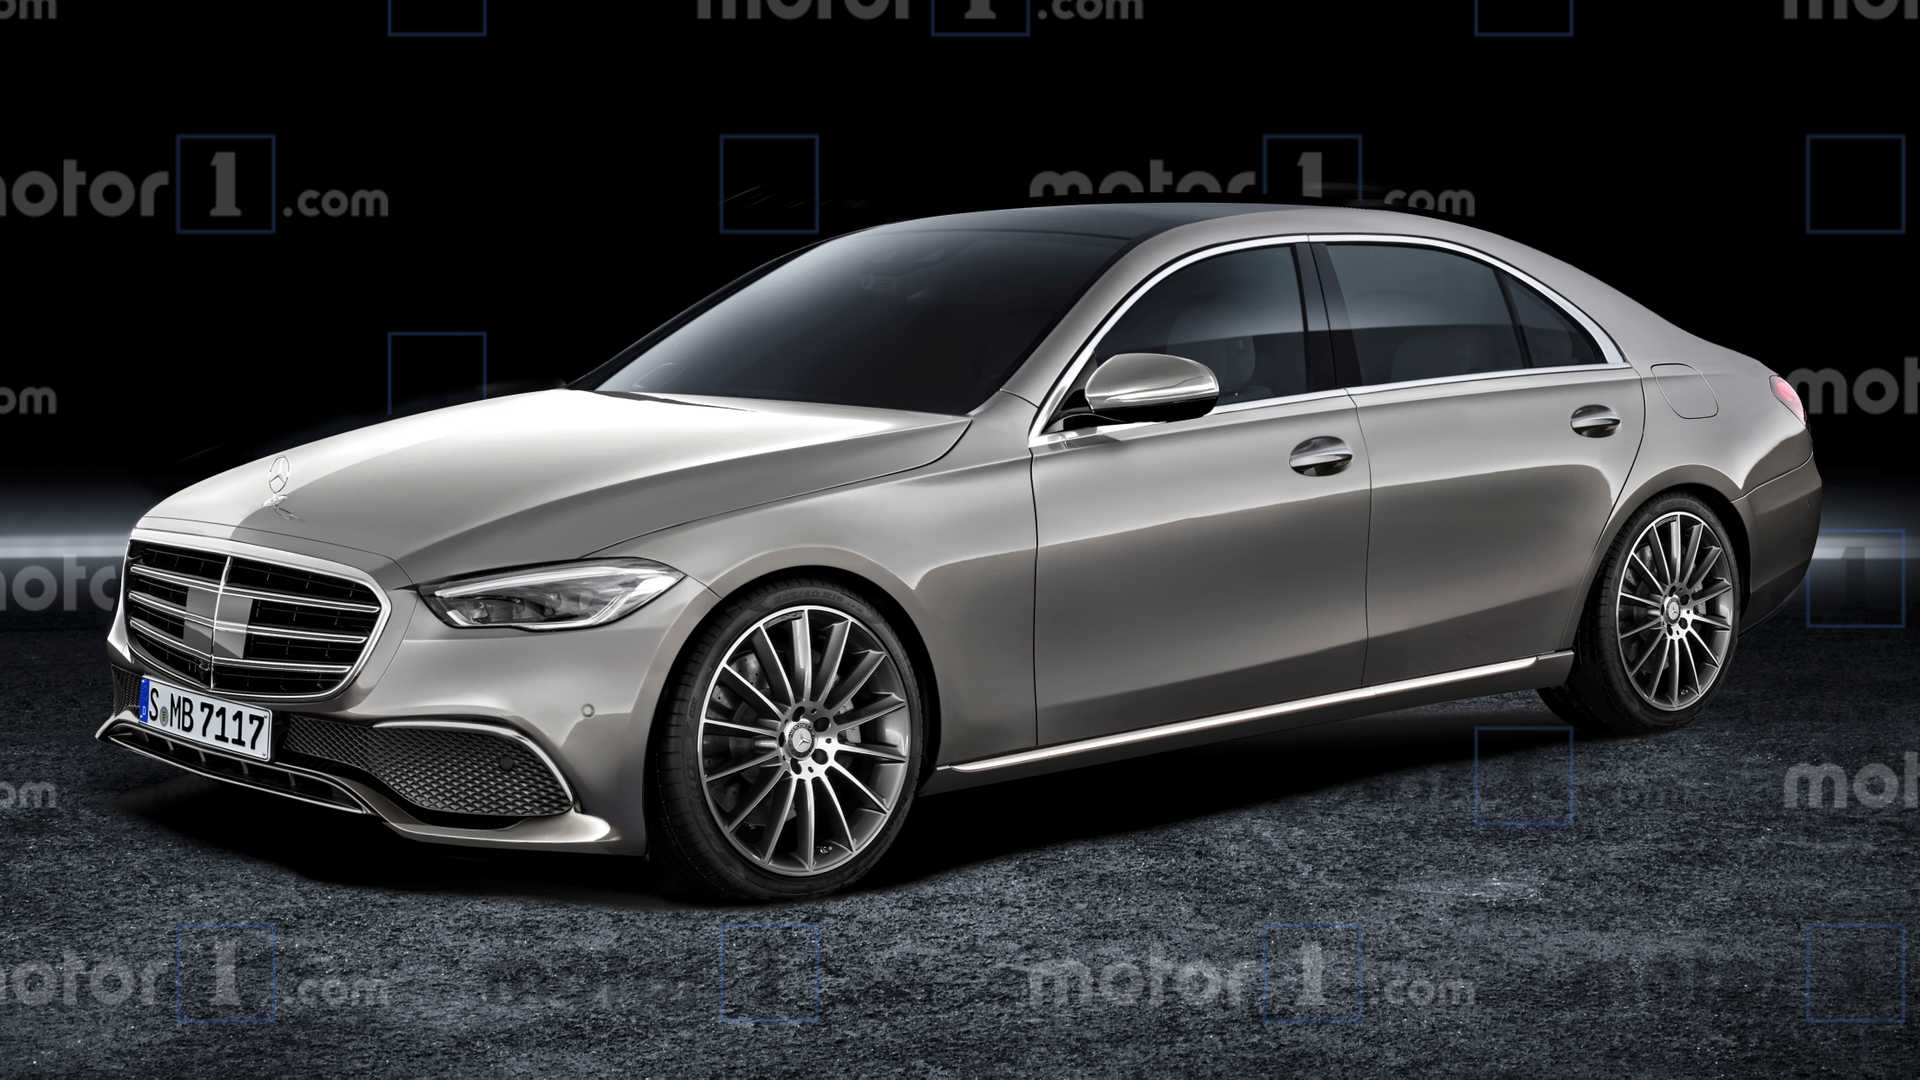 2020 Mercedes-Benz S-Class Release Date and Concept